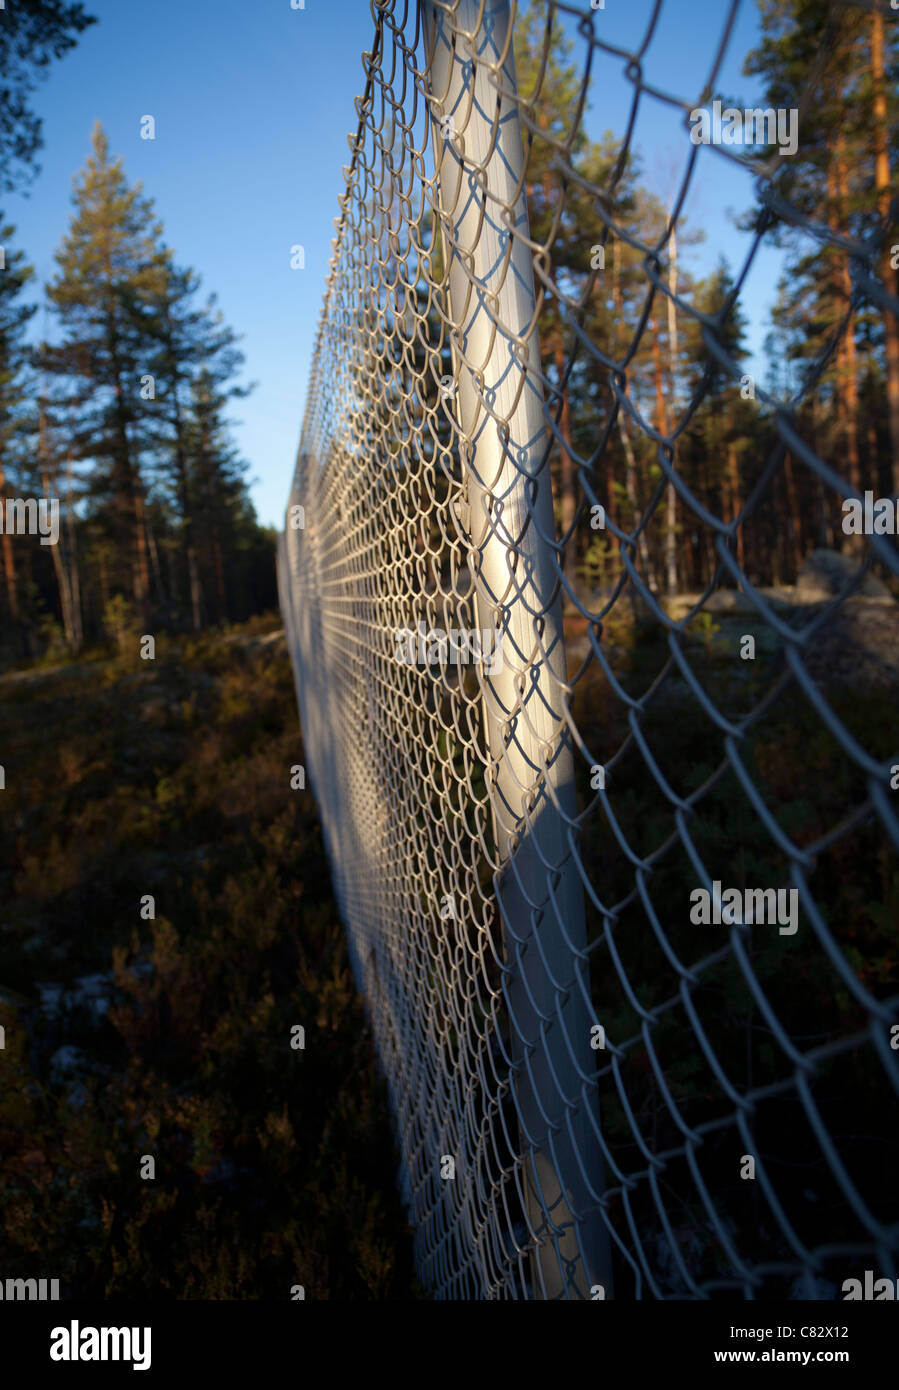 Closeup of a metal wire netting fence in the middle of the forest - Stock Image